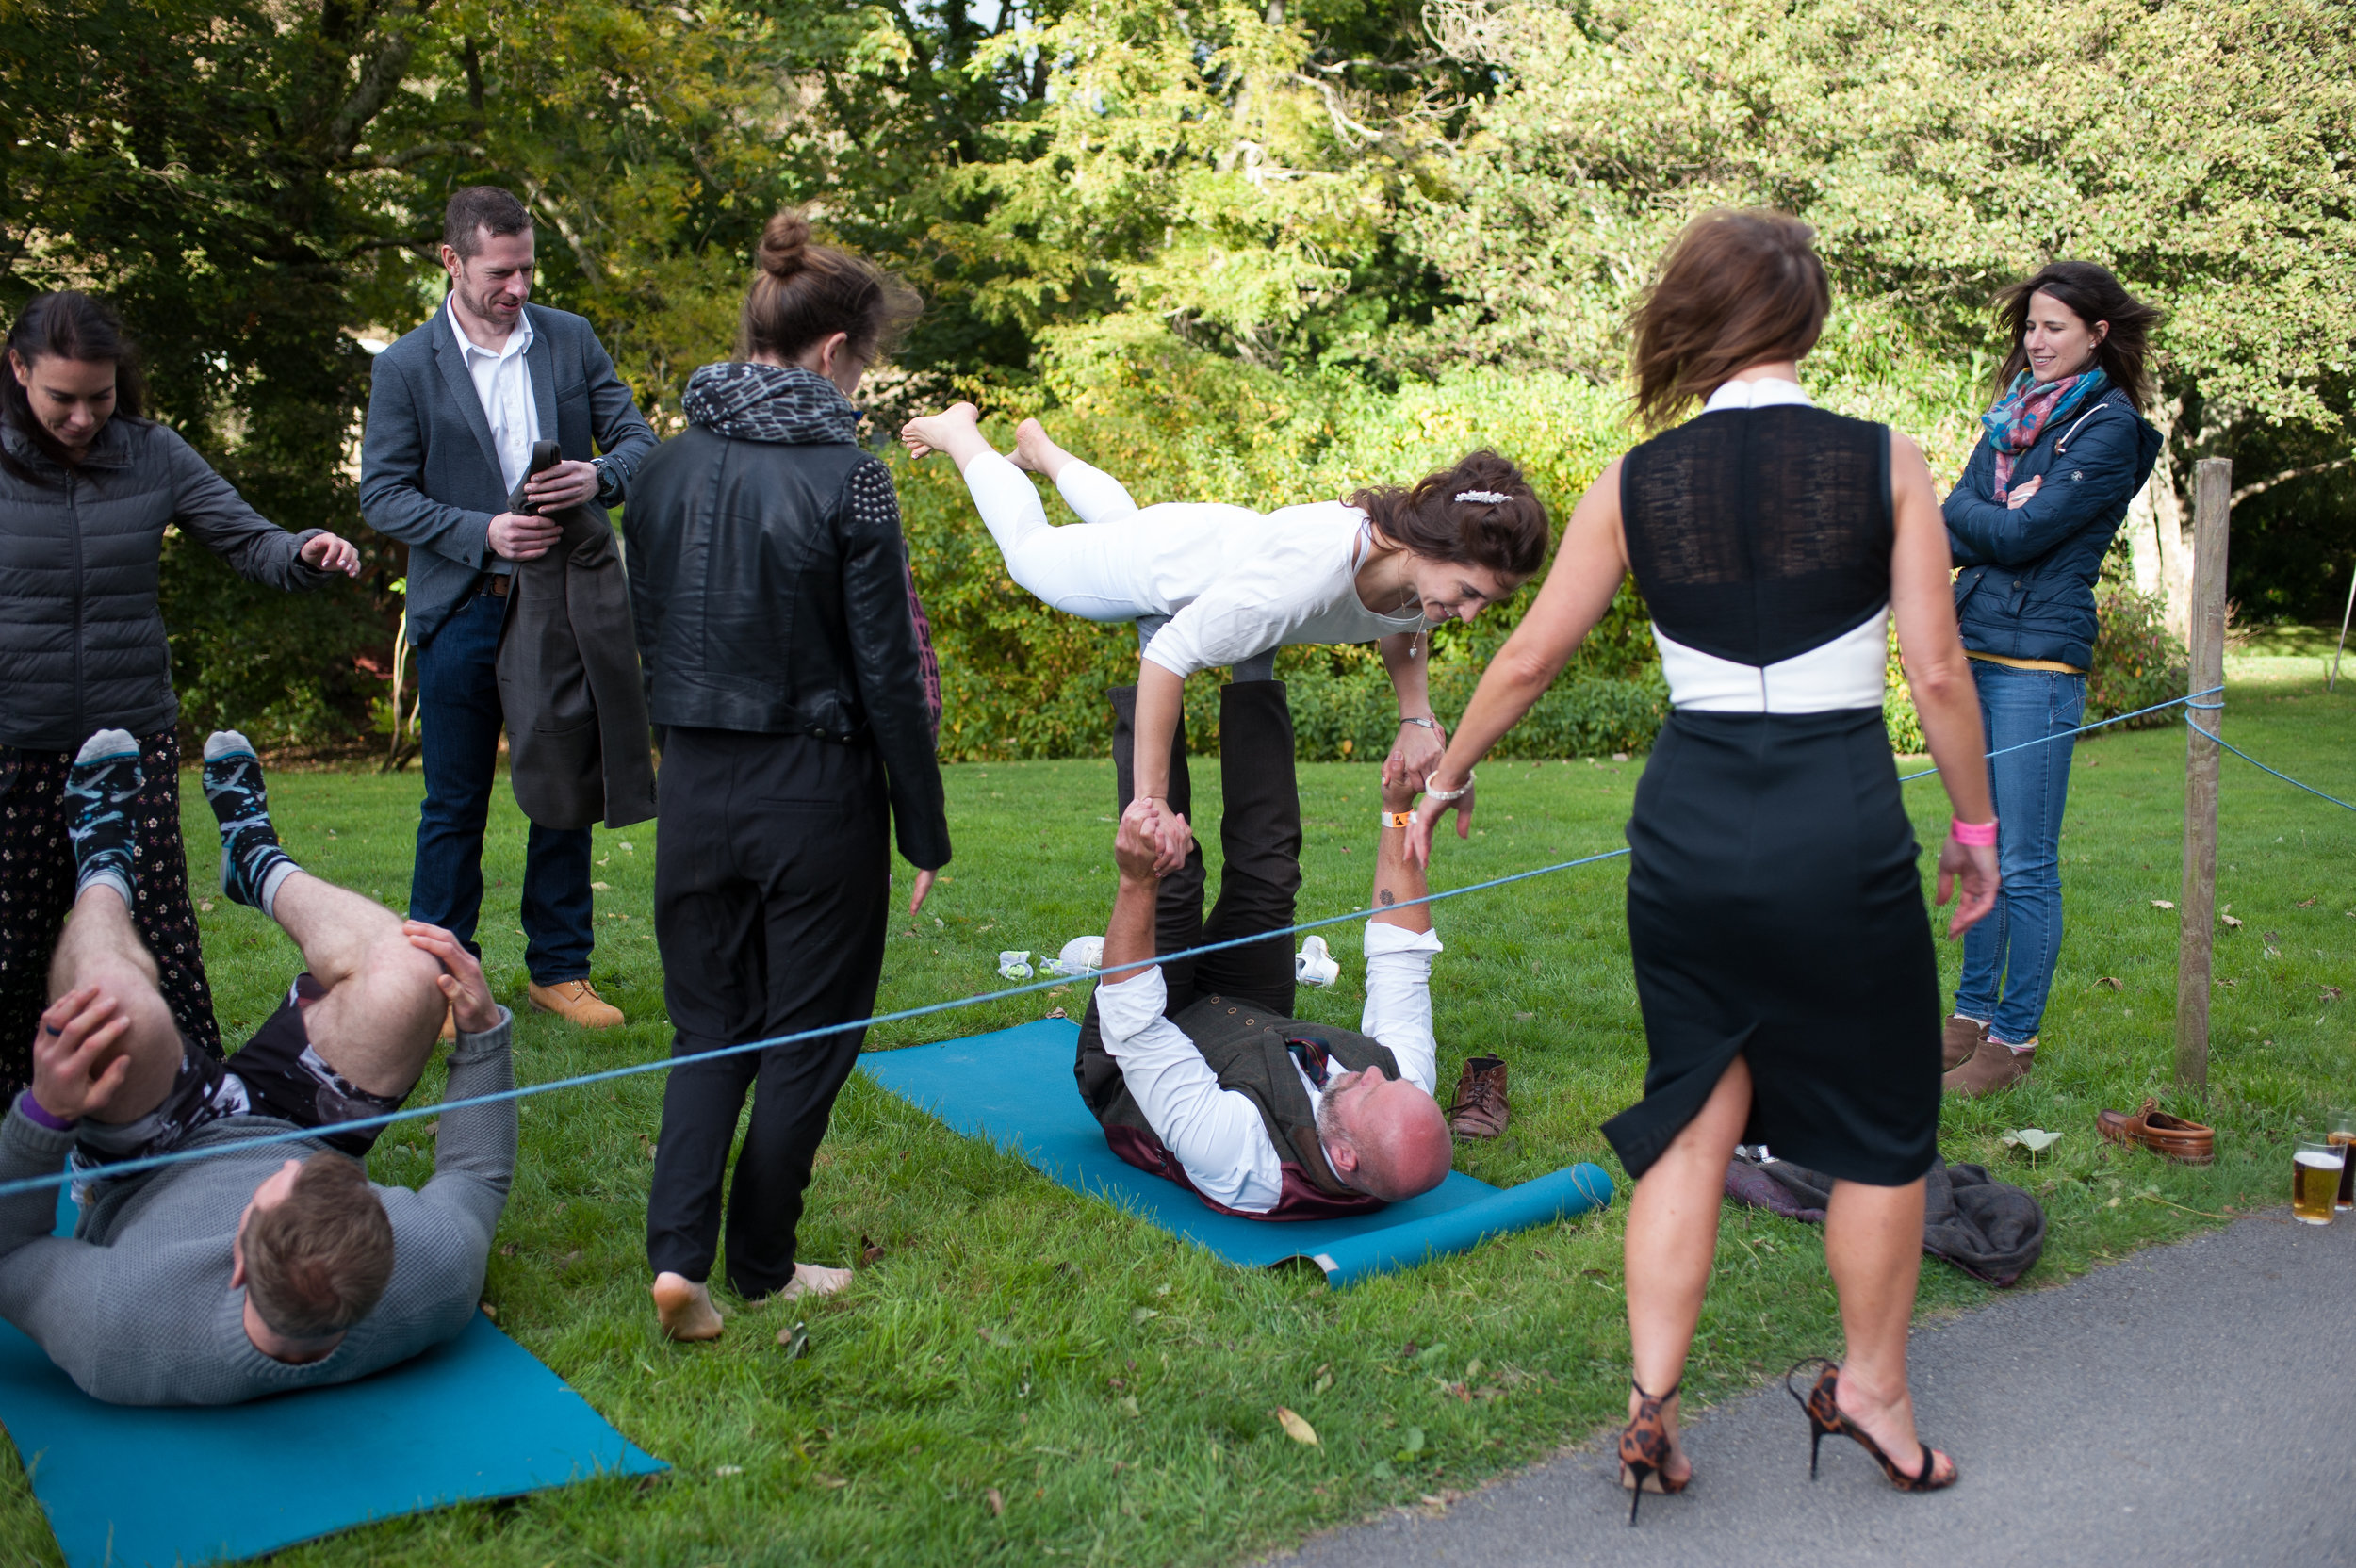 acroyoga with your wedding guests